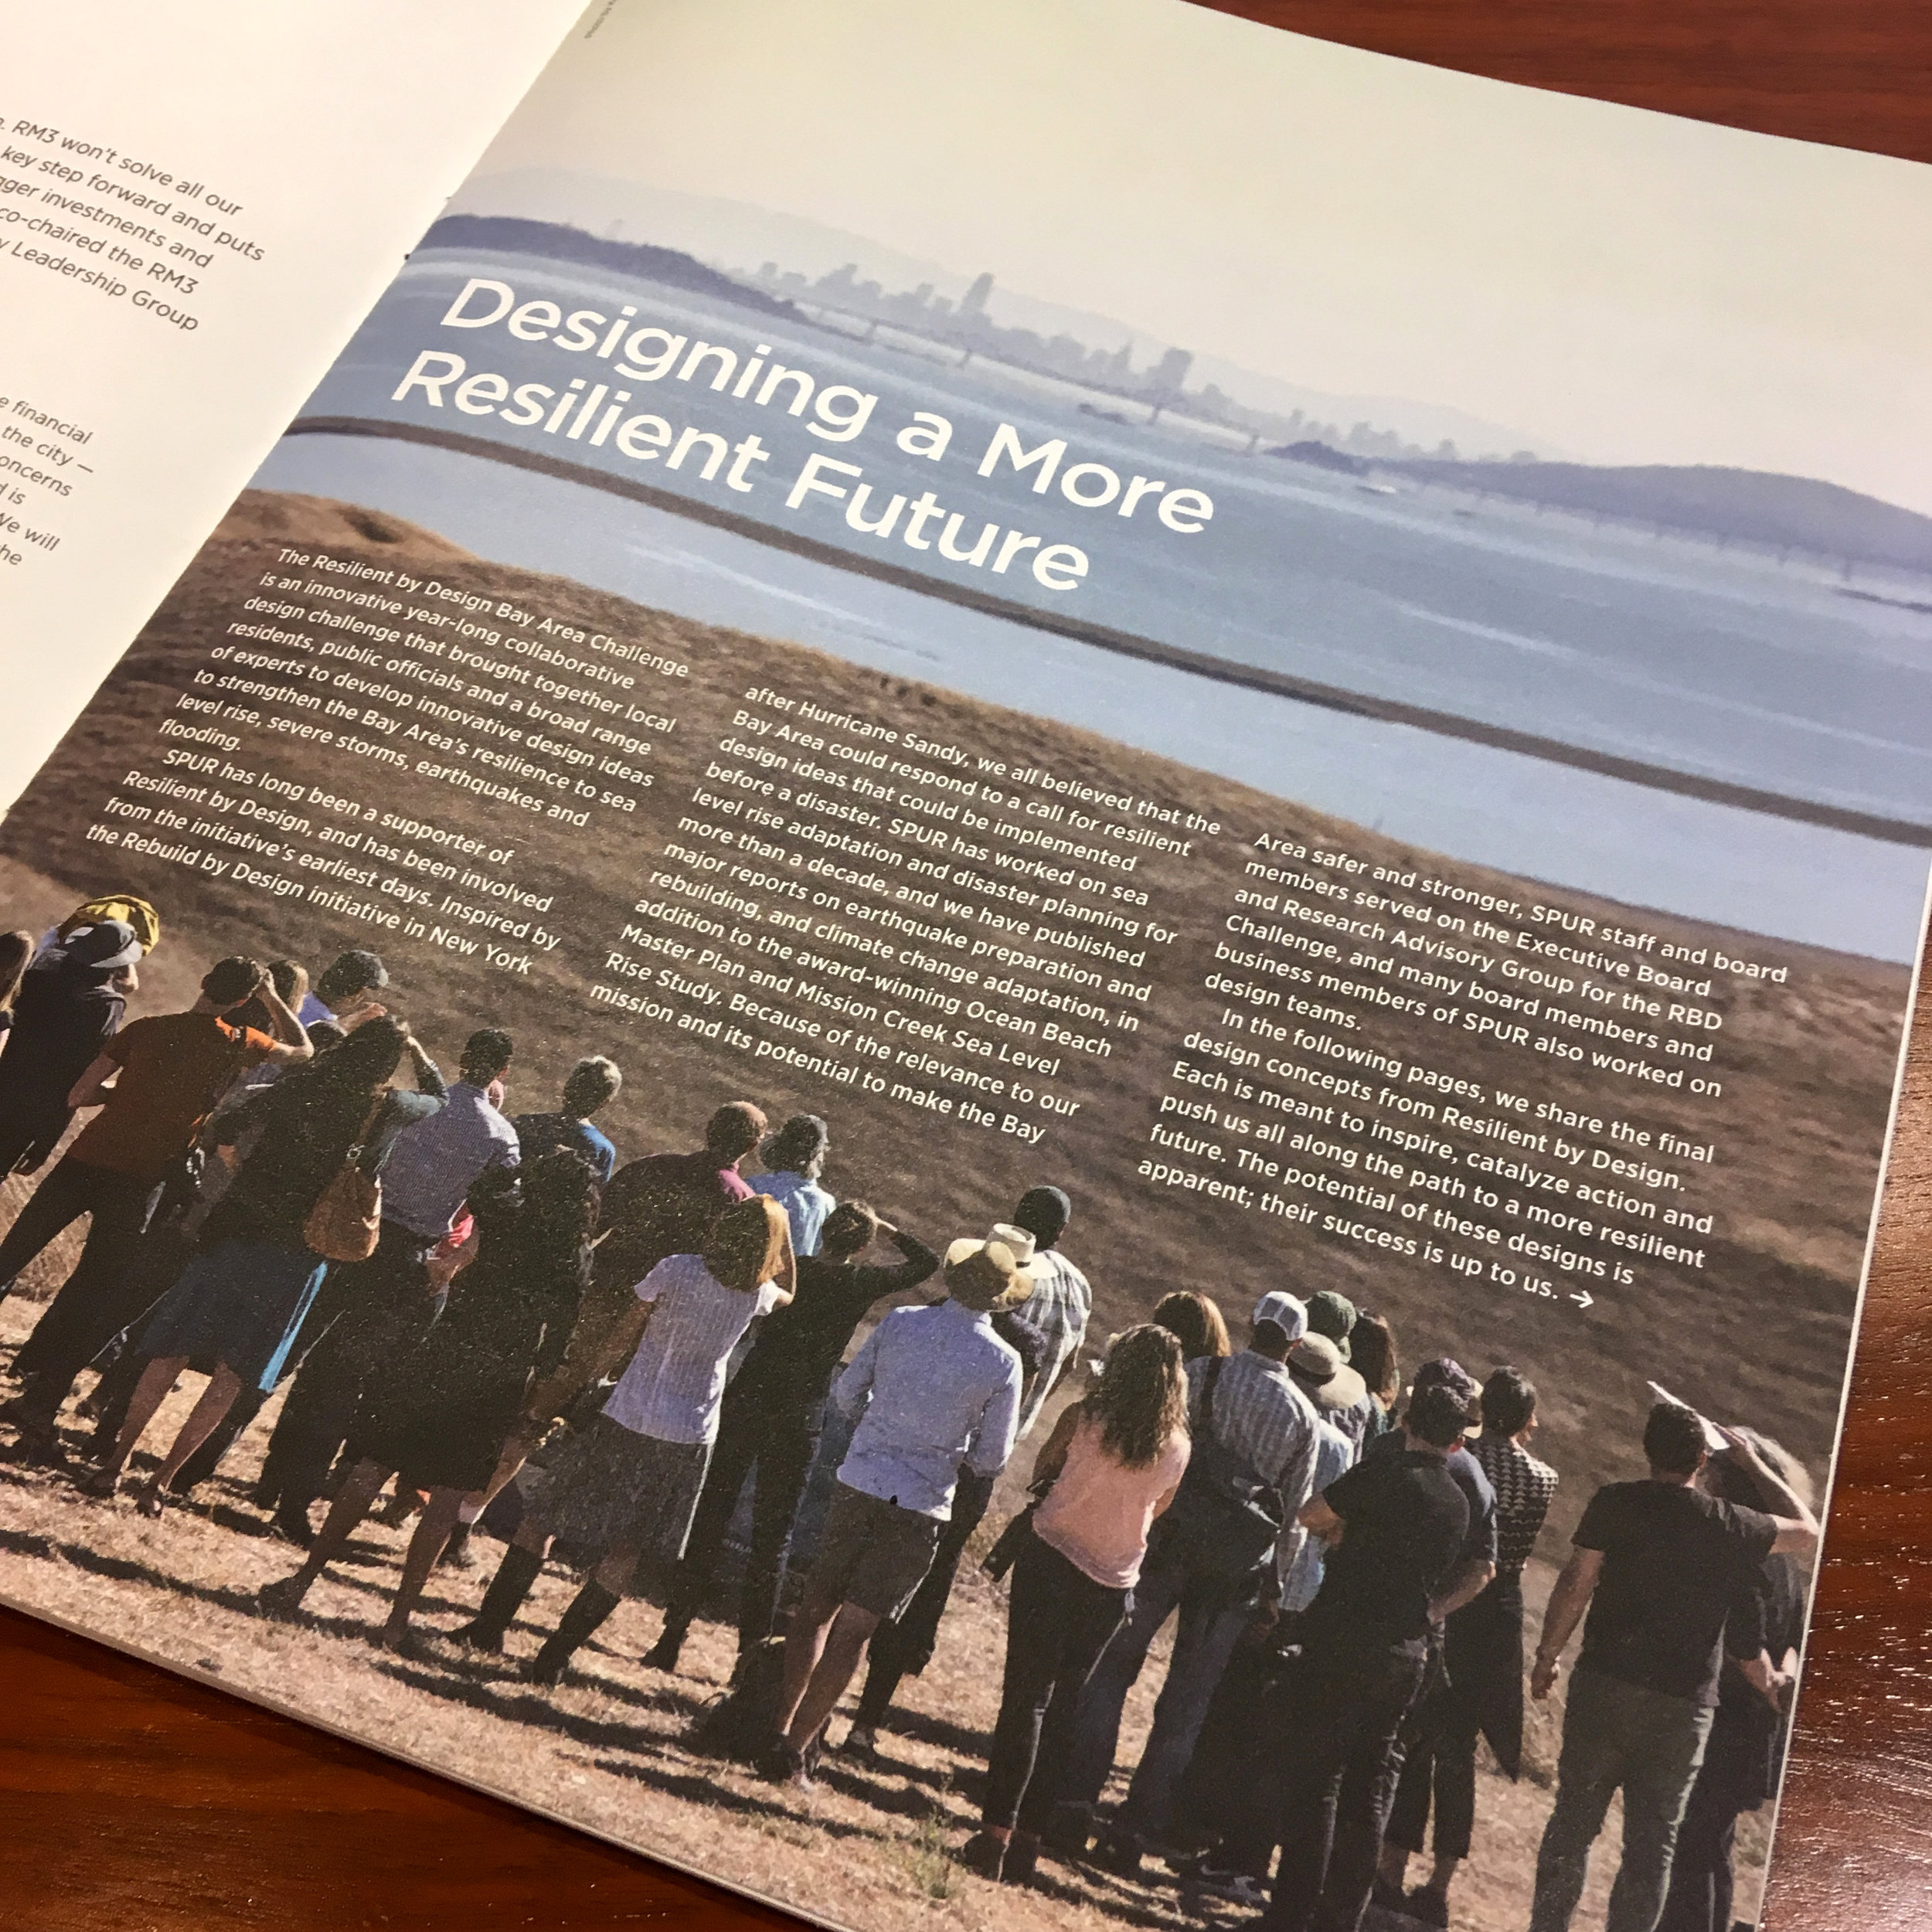 "The Urbanist features articles on the Resilient Bay Area Challenge - July 10, 2018""The Resilient by Design Bay Area Challenge is an innovative year-long collaborative design challenge that brought together local residents, public officials and a broad range of experts to develop innovative design ideas to strengthen the Bay Area's resilience to sea level rise, severe storms, earthquakes and flooding."""